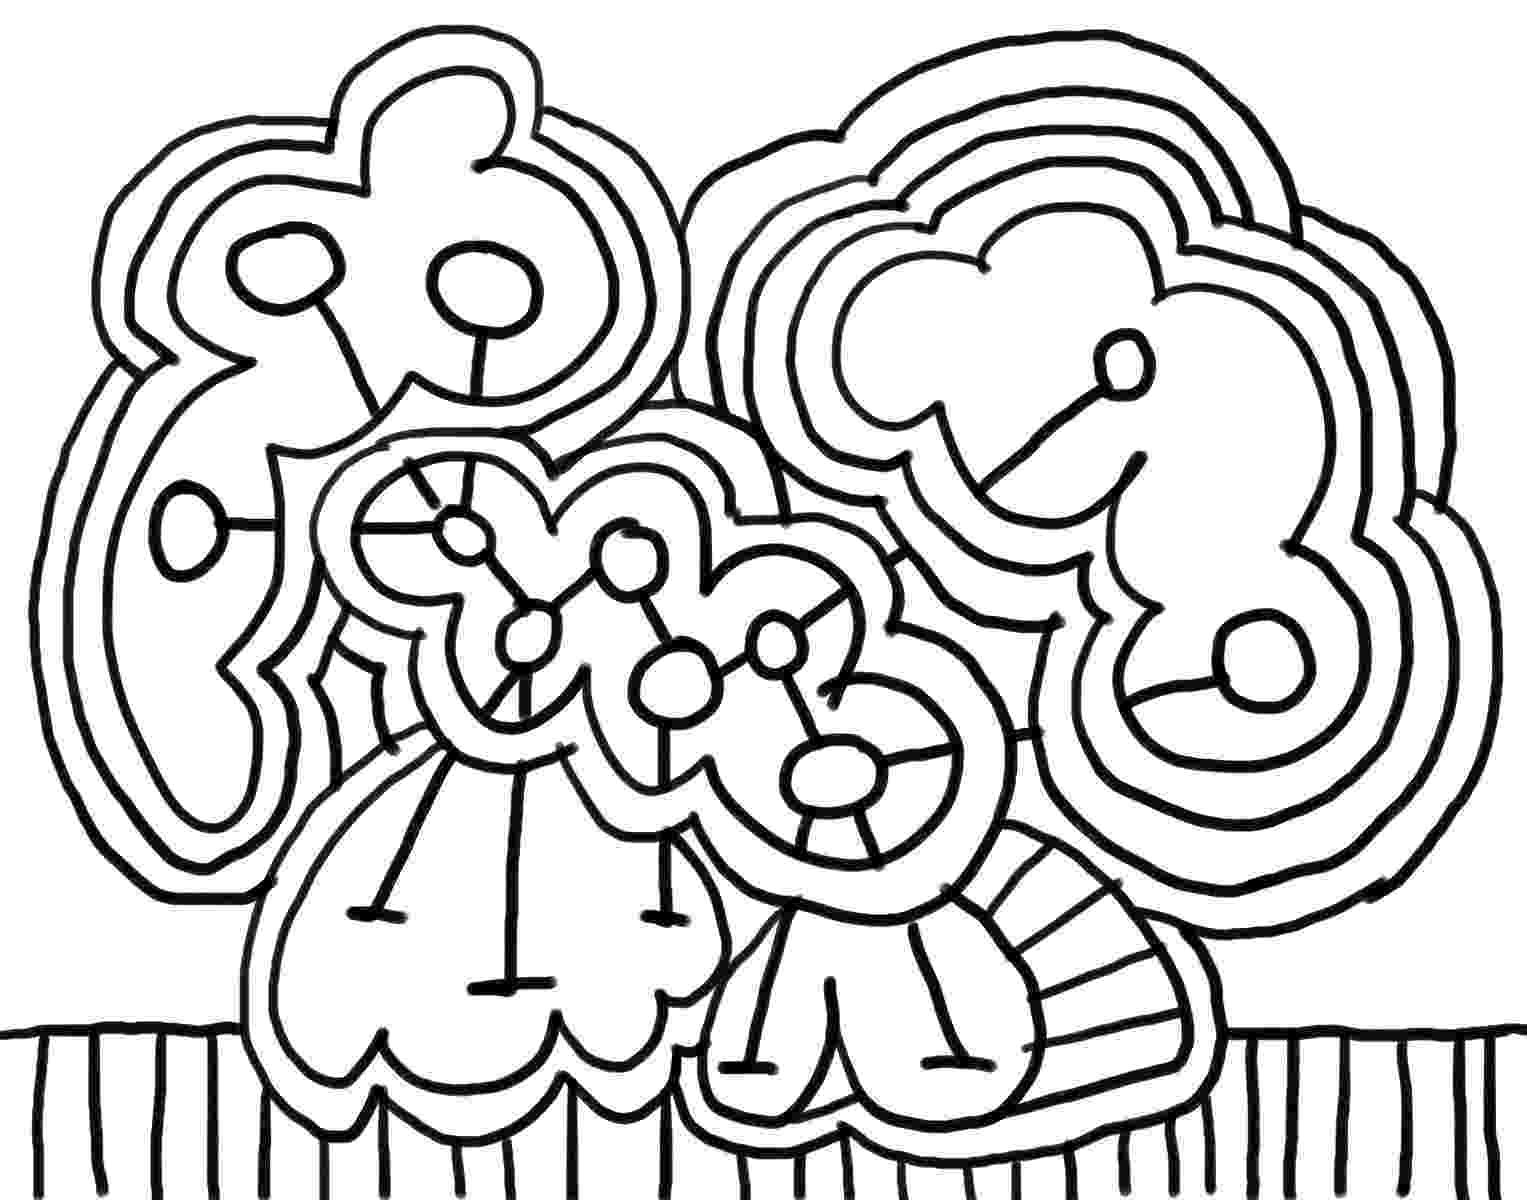 free abstract coloring pages get this printable abstract coloring pages online 42671 free pages coloring abstract